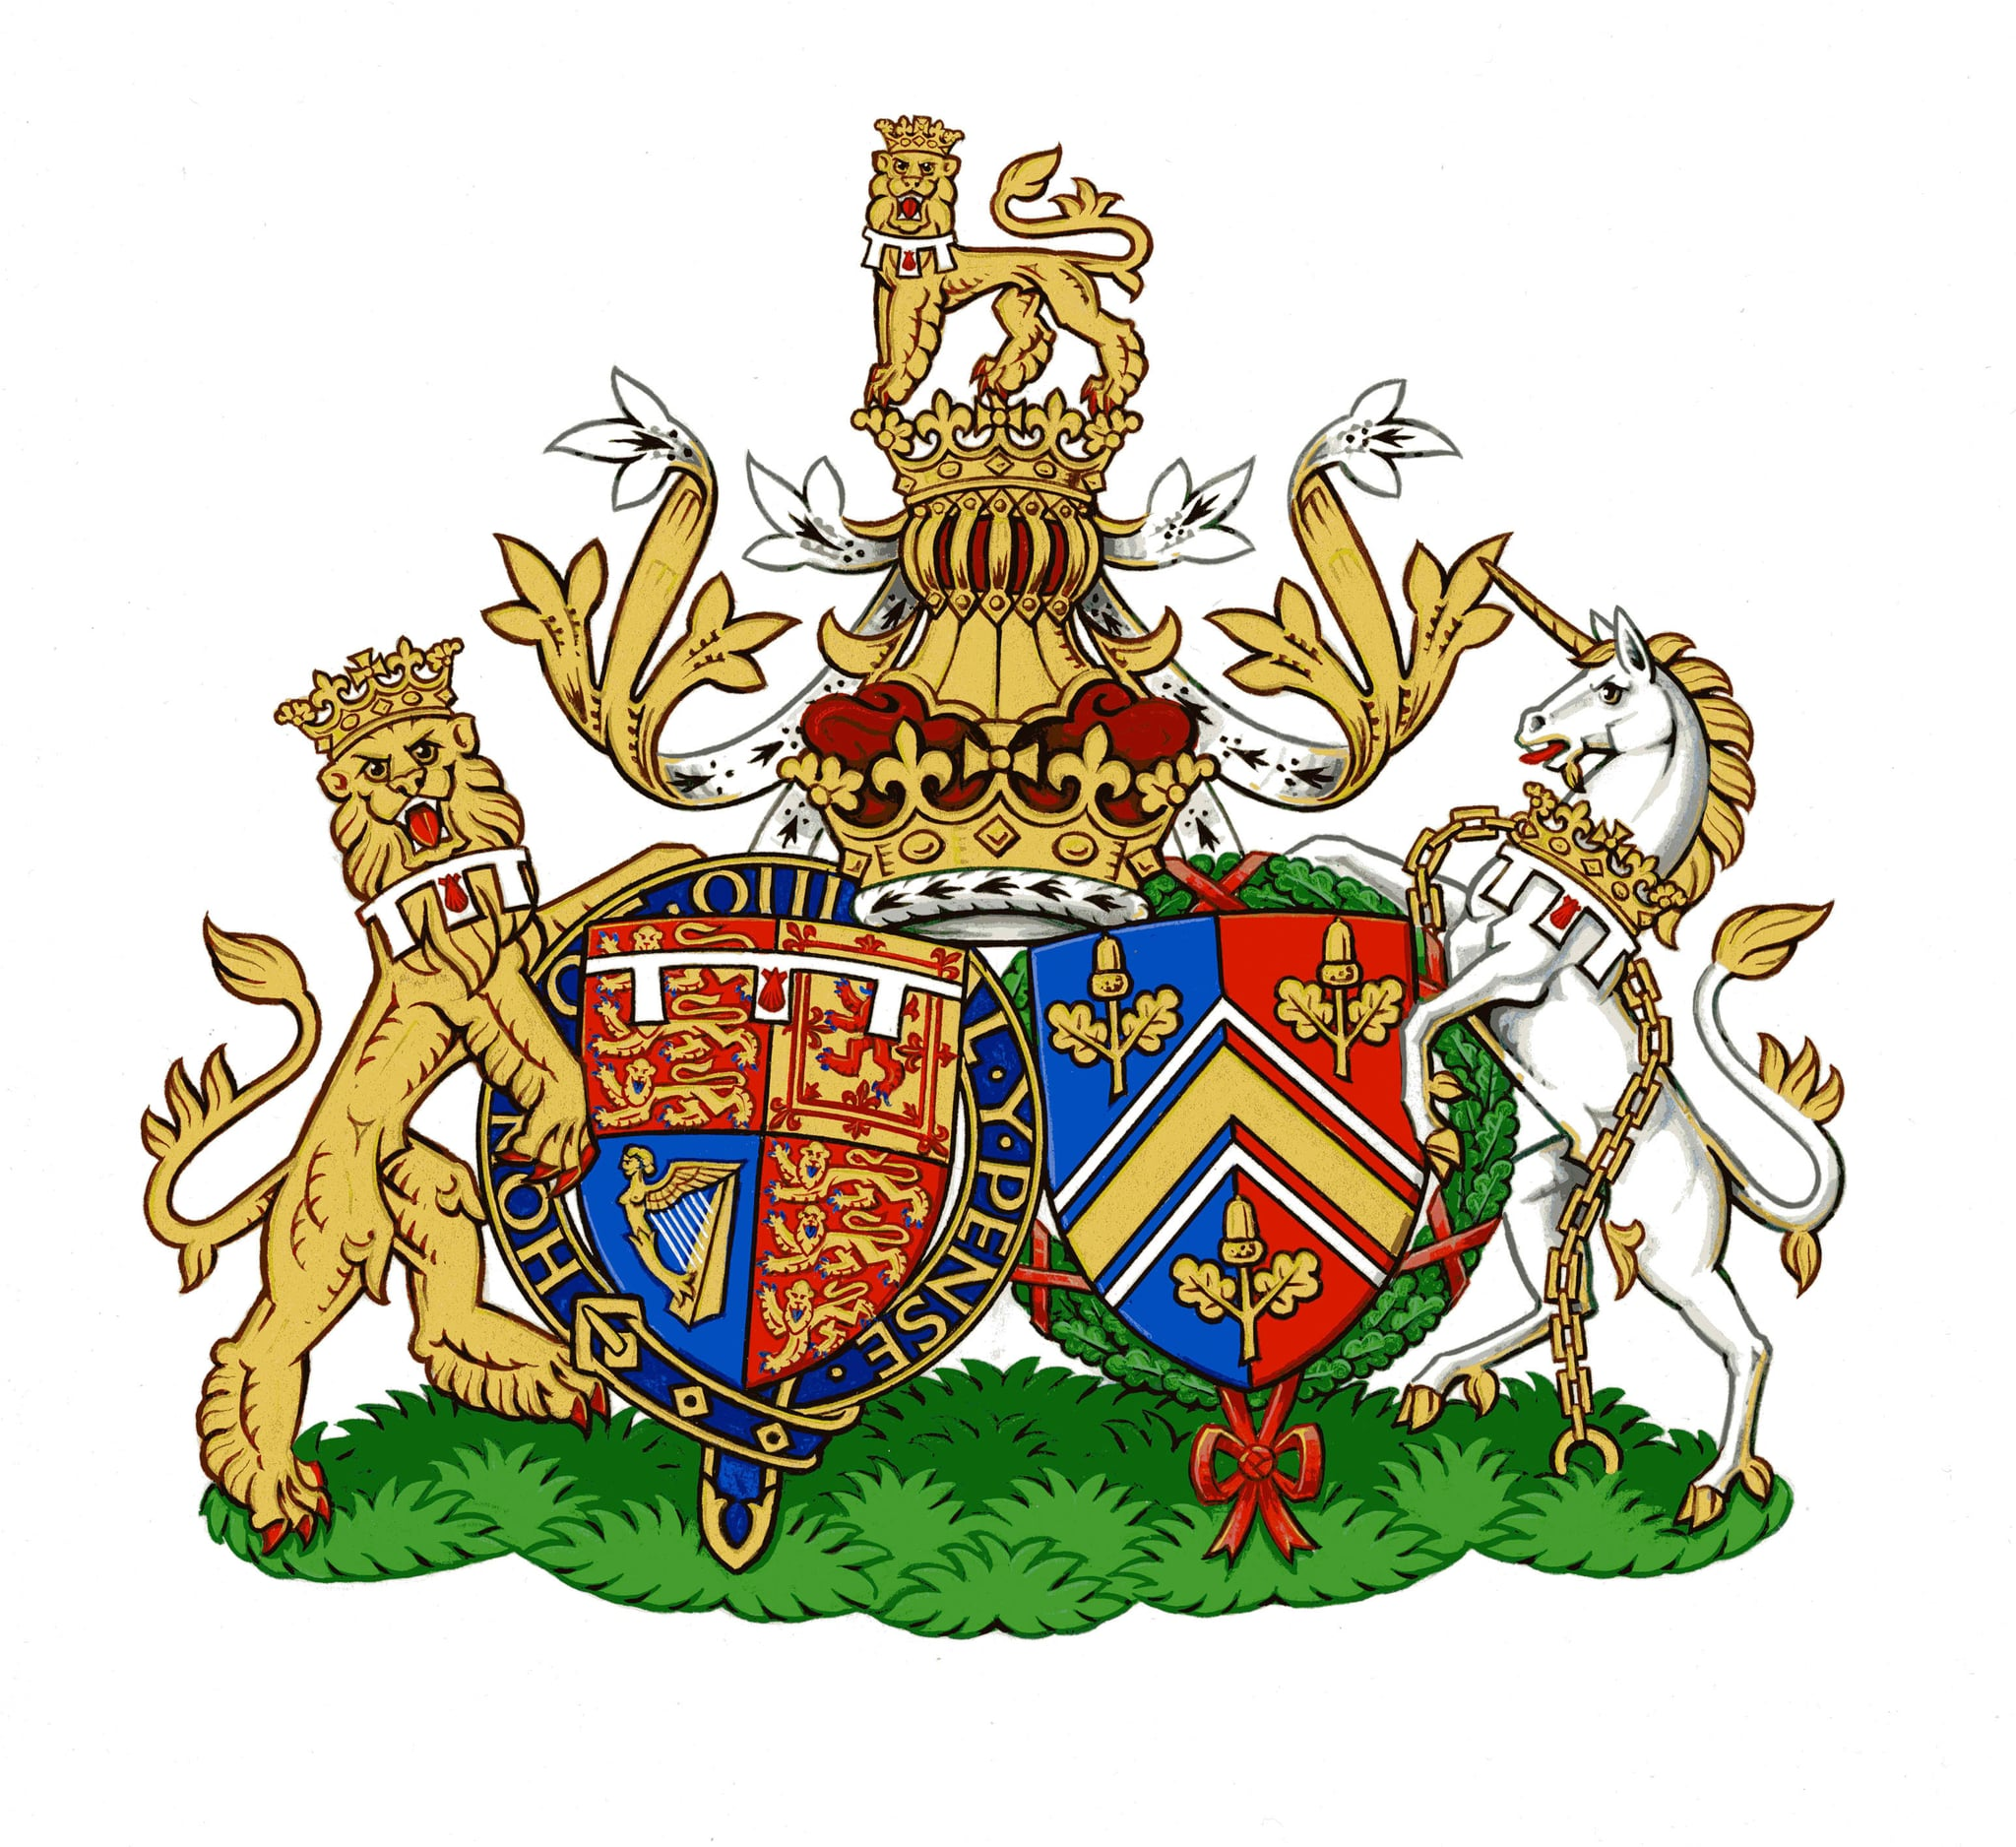 UNSPECIFIED, UNDATED: This undated handout image provided by Kensington Palace, London, England on September 27, 2013 depicts the new Conjugal Coat of Arms for Prince William, Duke of Cambridge and Catherine, Duchess of Cambridge of the United Kingdom, which will represent them in heraldic terms as a married couple. Designed by The College of Arms in London, Conjugal Arms traditionally show the separate shields of a royal husband and wife, side by side. The Duke's shield on the left is his version of the Royal Coat of Arms granted to him by Queen Elizabeth II on his 18th birthday. On the right, the Duchess's shield is from the Middleton family Coat of Arms, granted to the family in 2011 ahead of her marriage. (Photo by Kensington Palace via Getty Images)